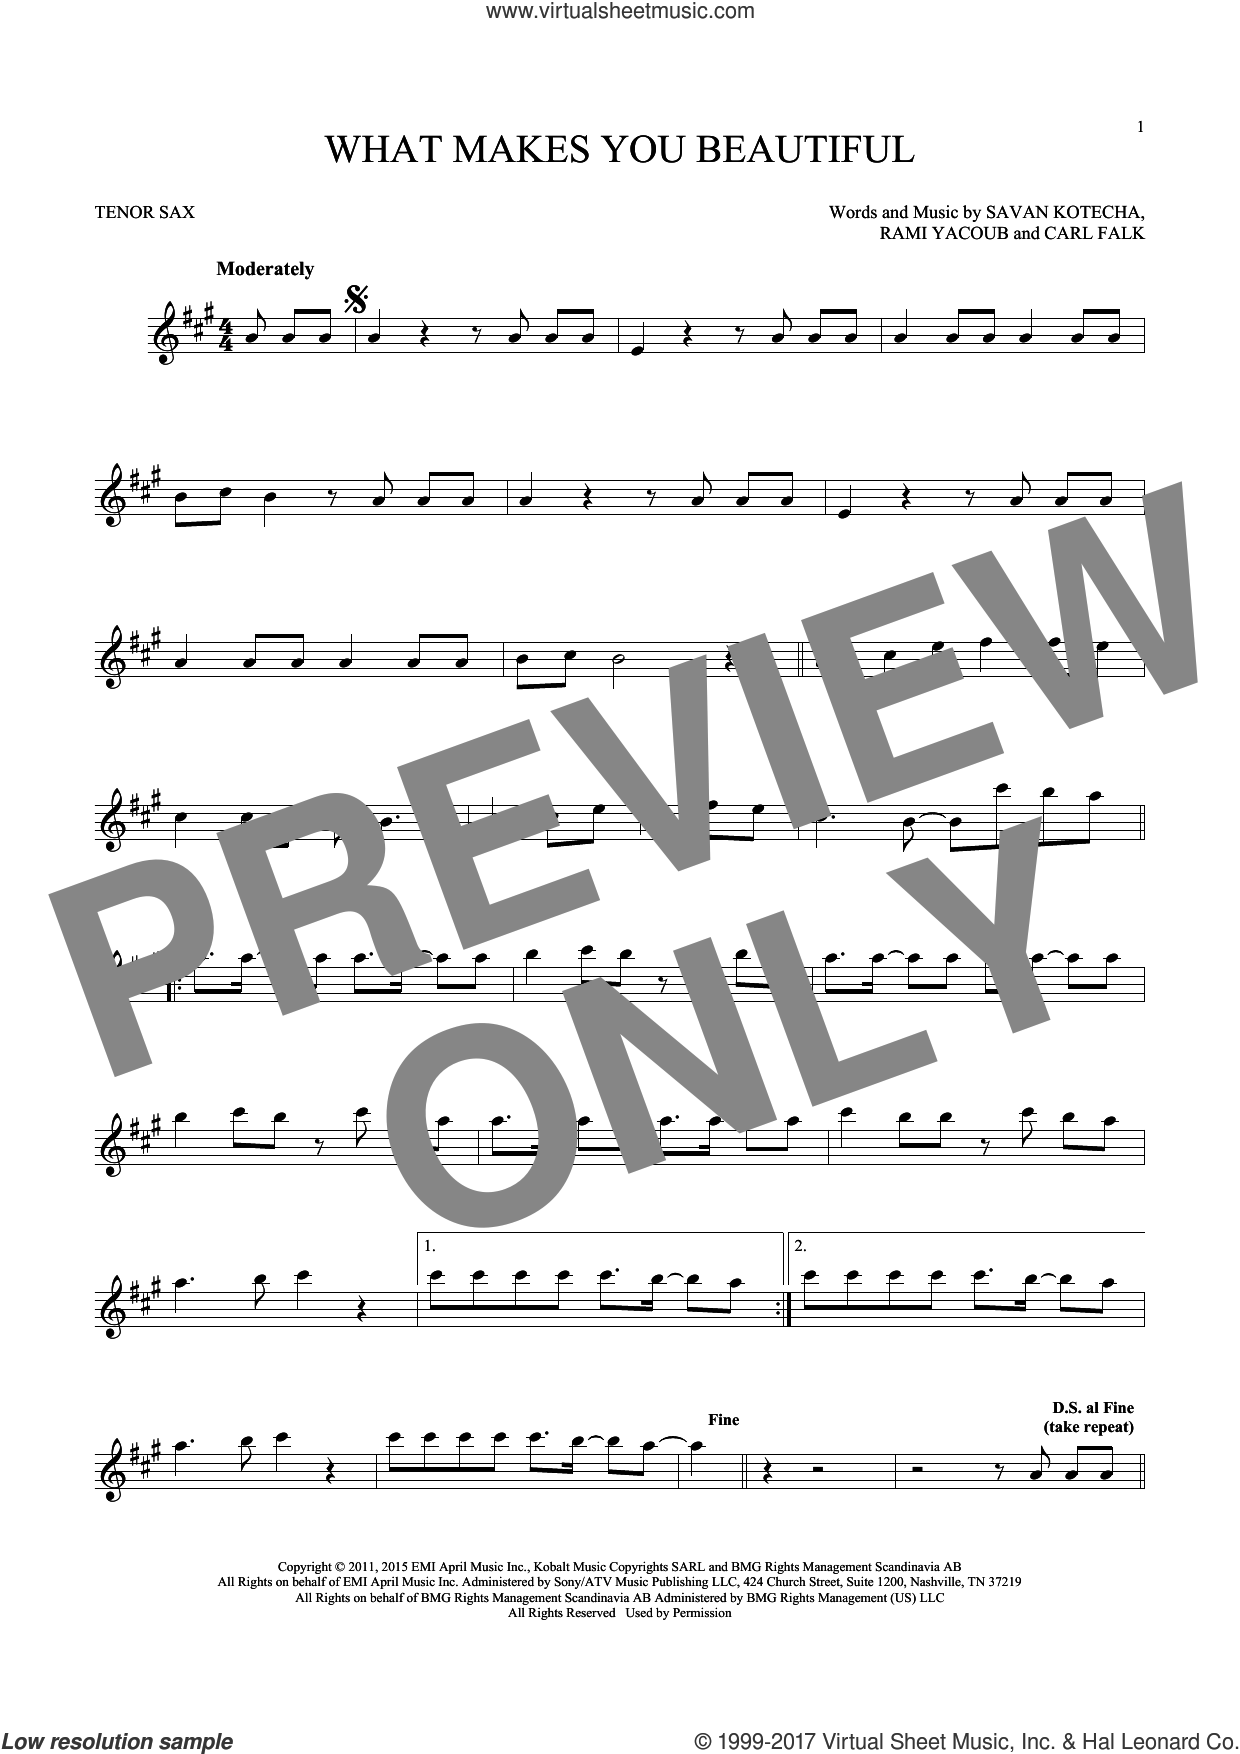 What Makes You Beautiful sheet music for tenor saxophone solo ( Sax) by One Direction, Carl Falk, Rami and Savan Kotecha, intermediate tenor saxophone ( Sax). Score Image Preview.